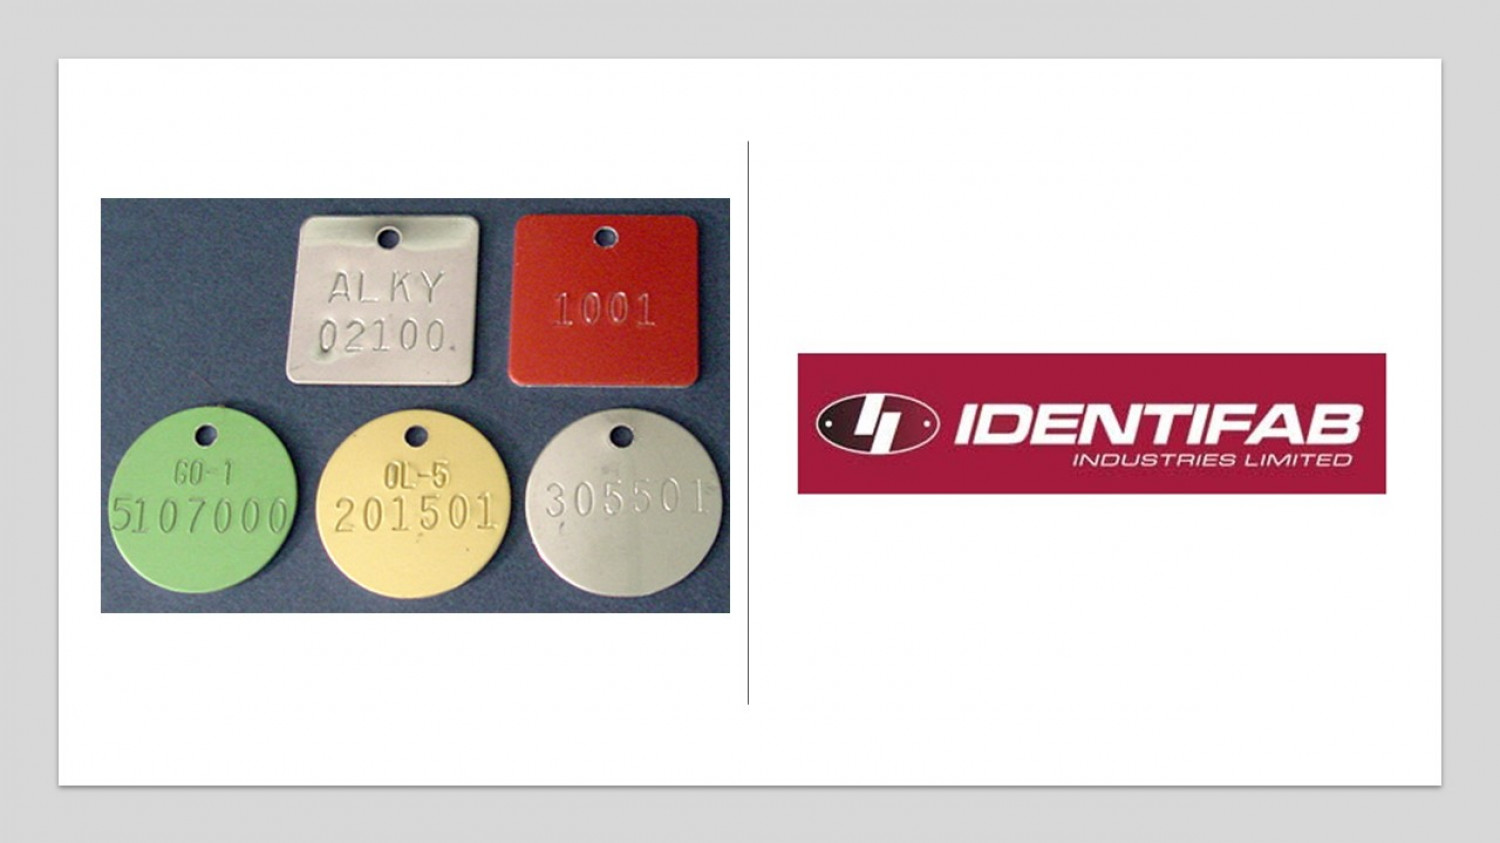 Get Highly Durable Valve Tags from Identifab Industries Infographic